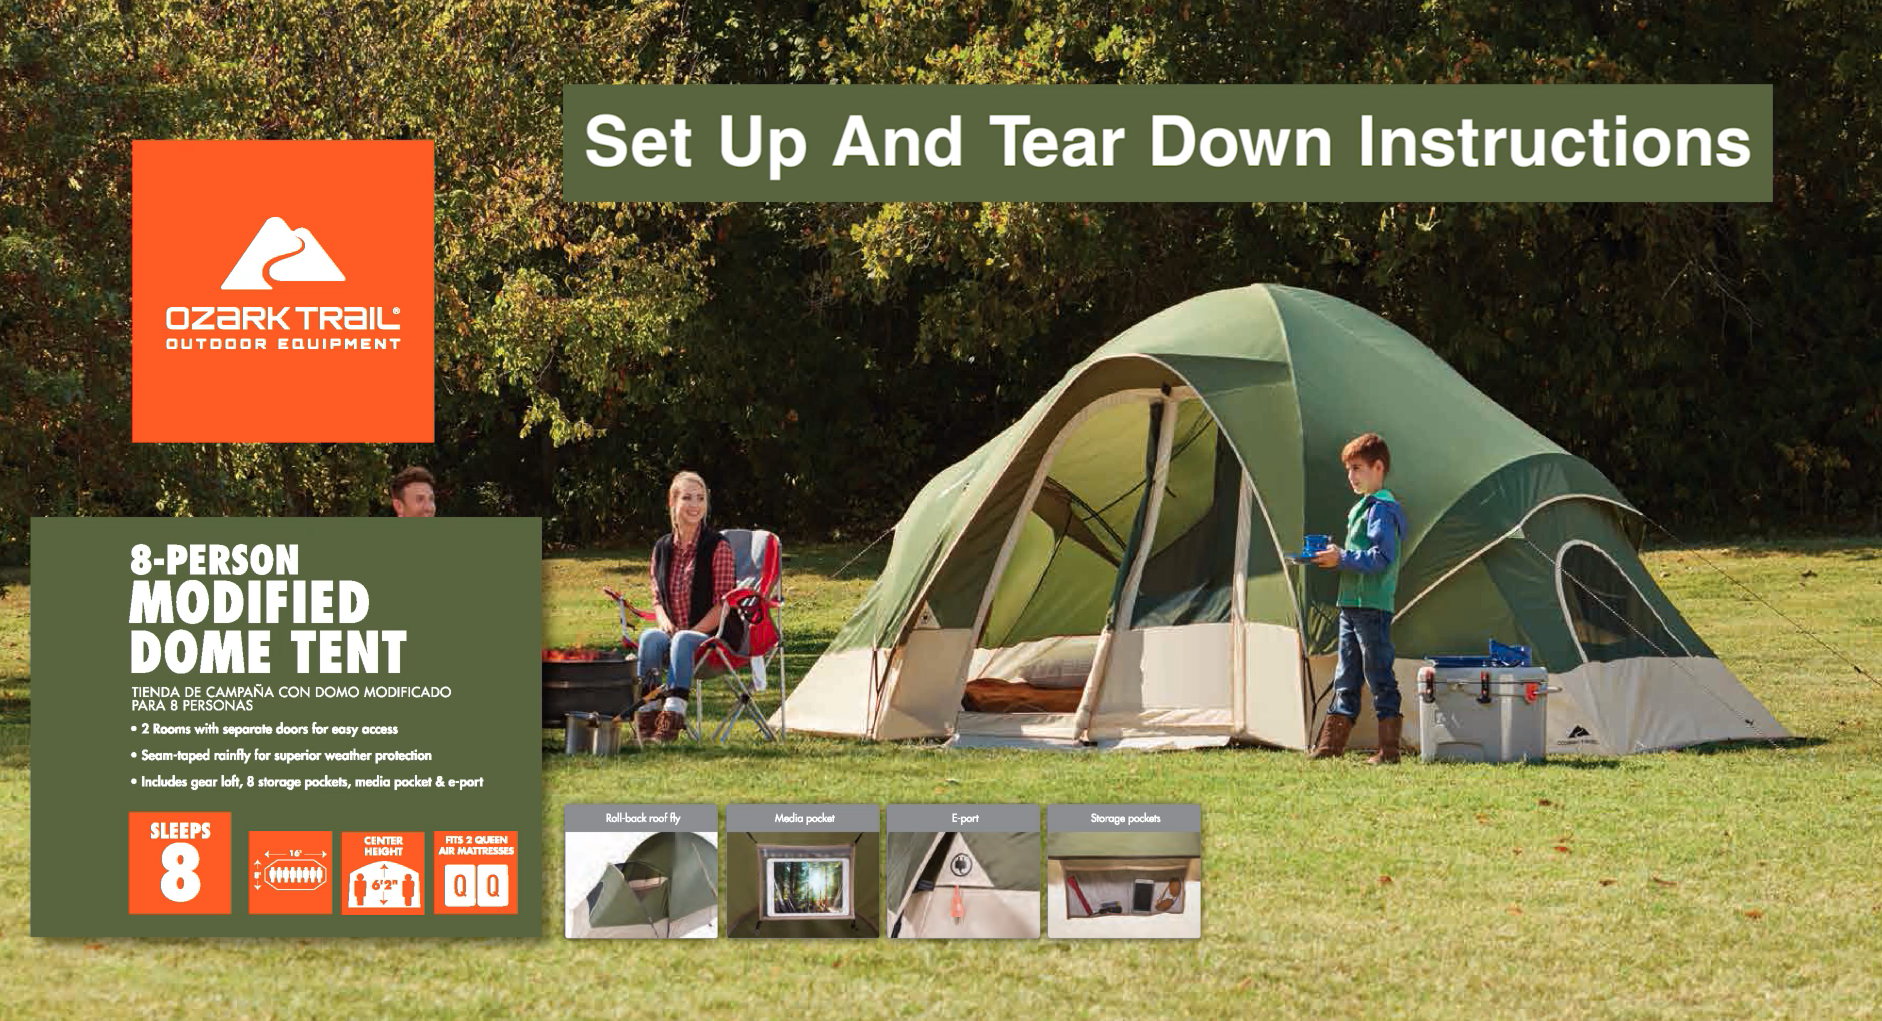 Ozark Trail Tent Instructions Choice Image - form 1040 instructions